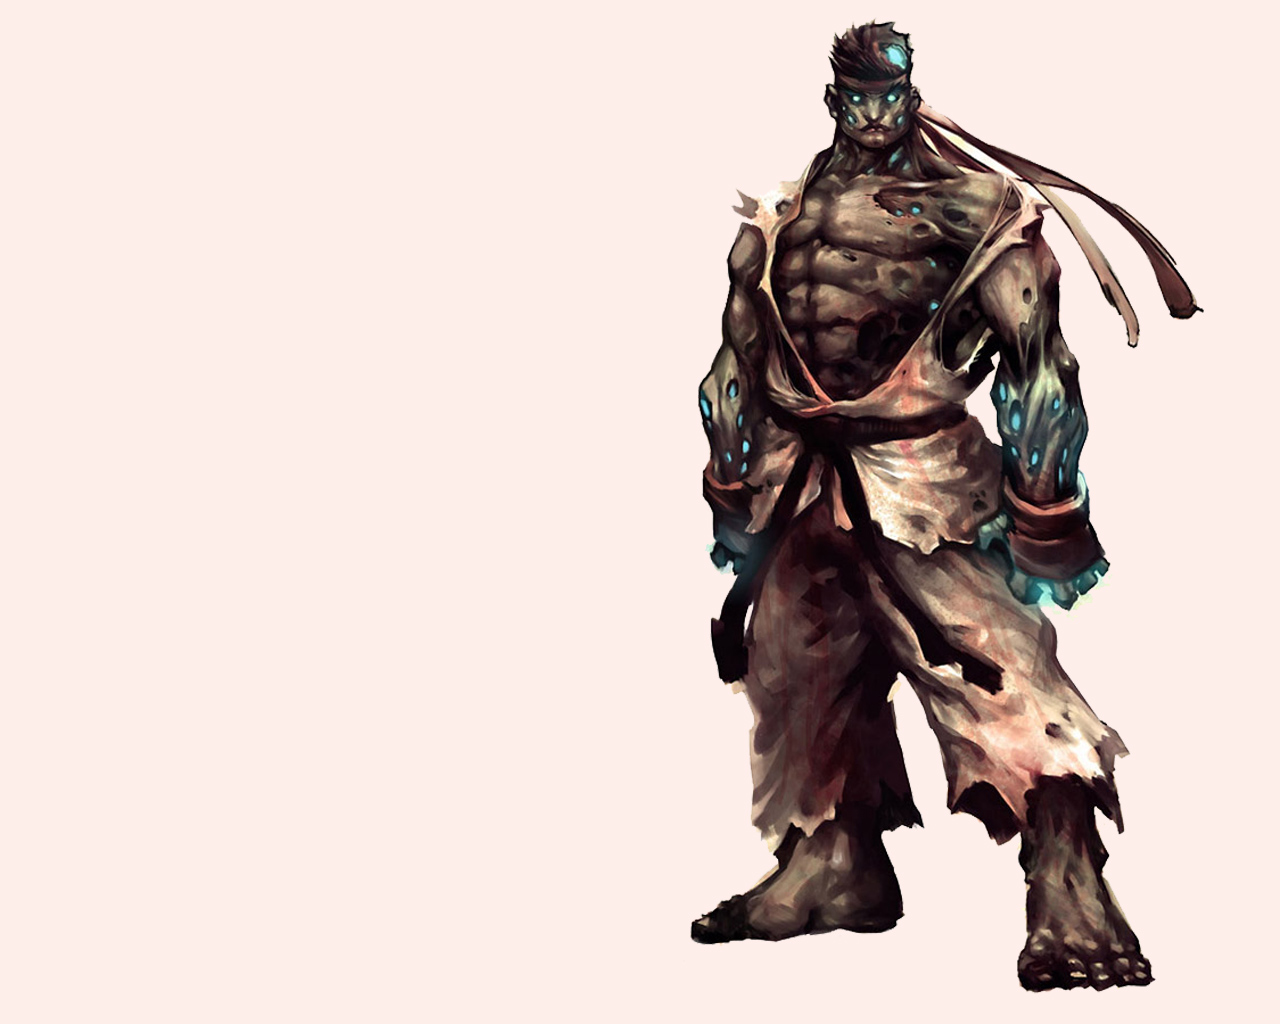 Street Fighter HD & Widescreen Wallpaper 0.404139828183886